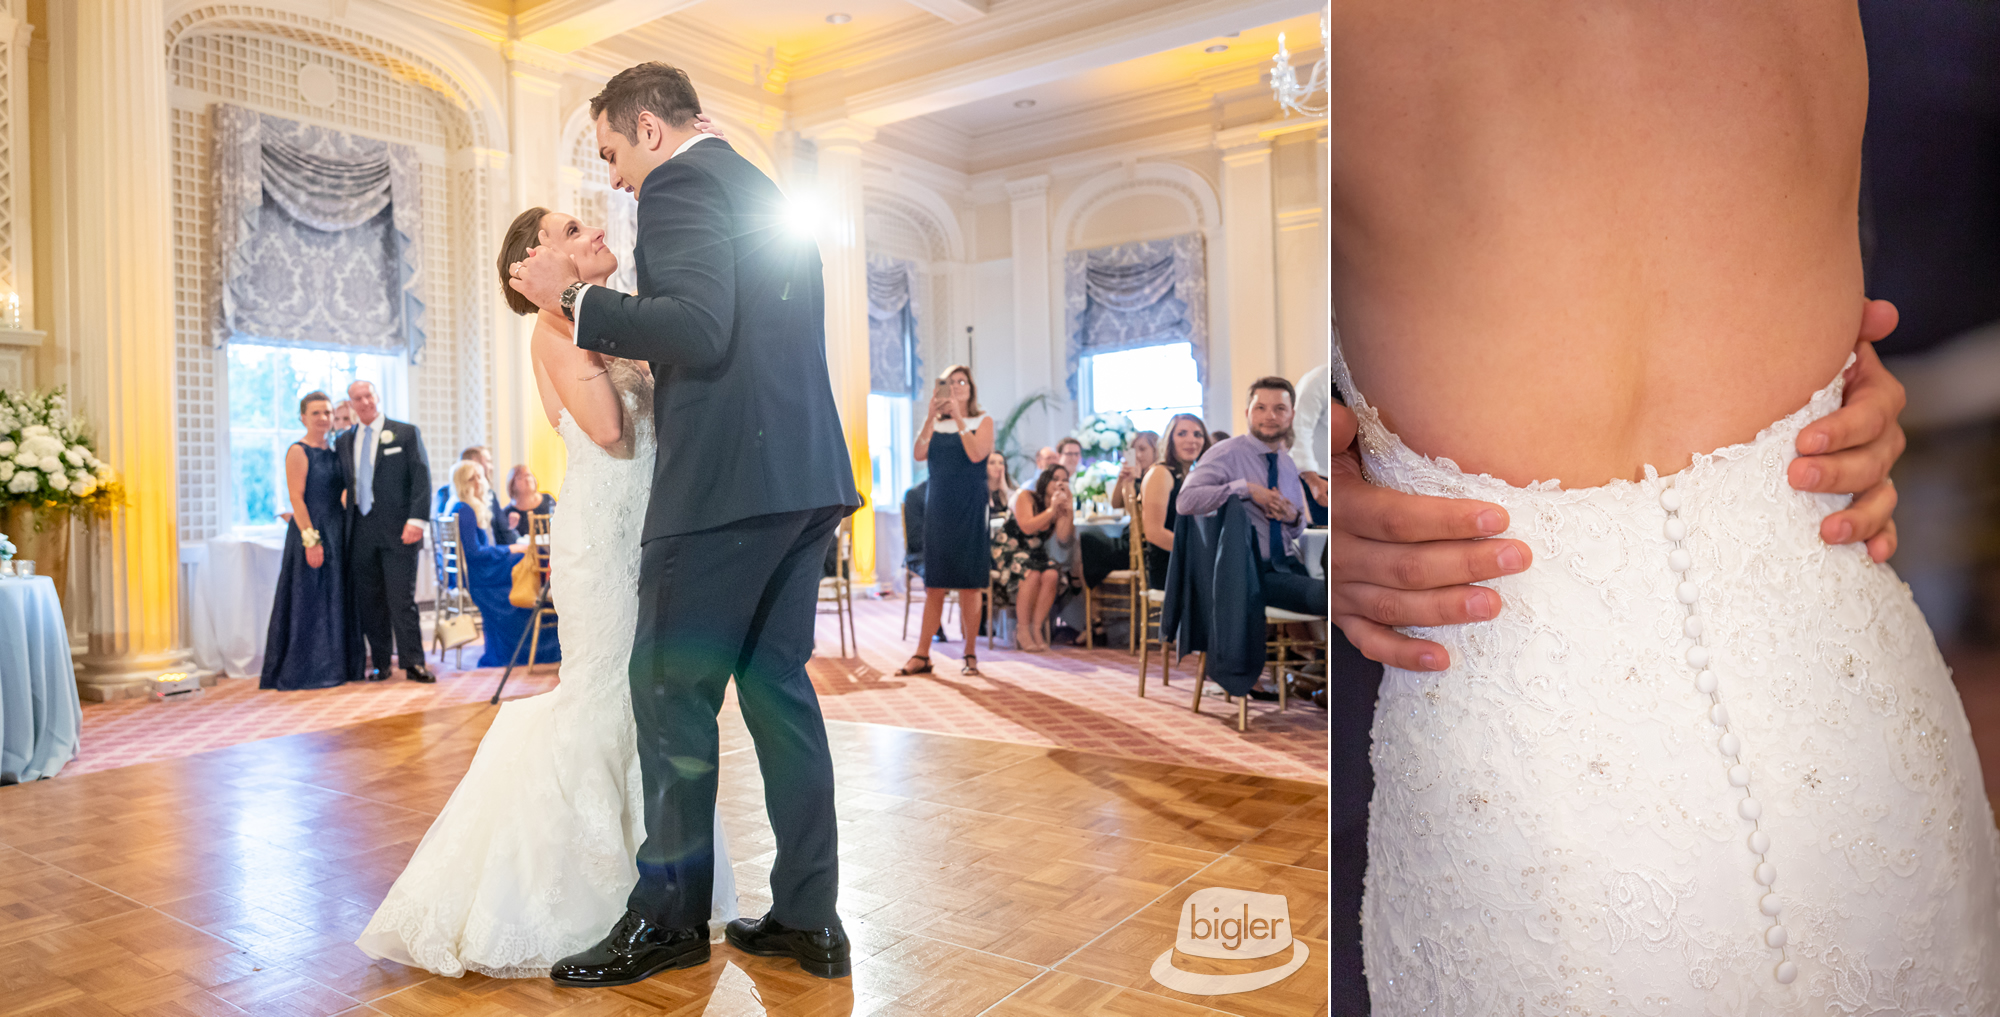 20180915_-_30_-_Ally_and_Andrew_Otesaga_Wedding